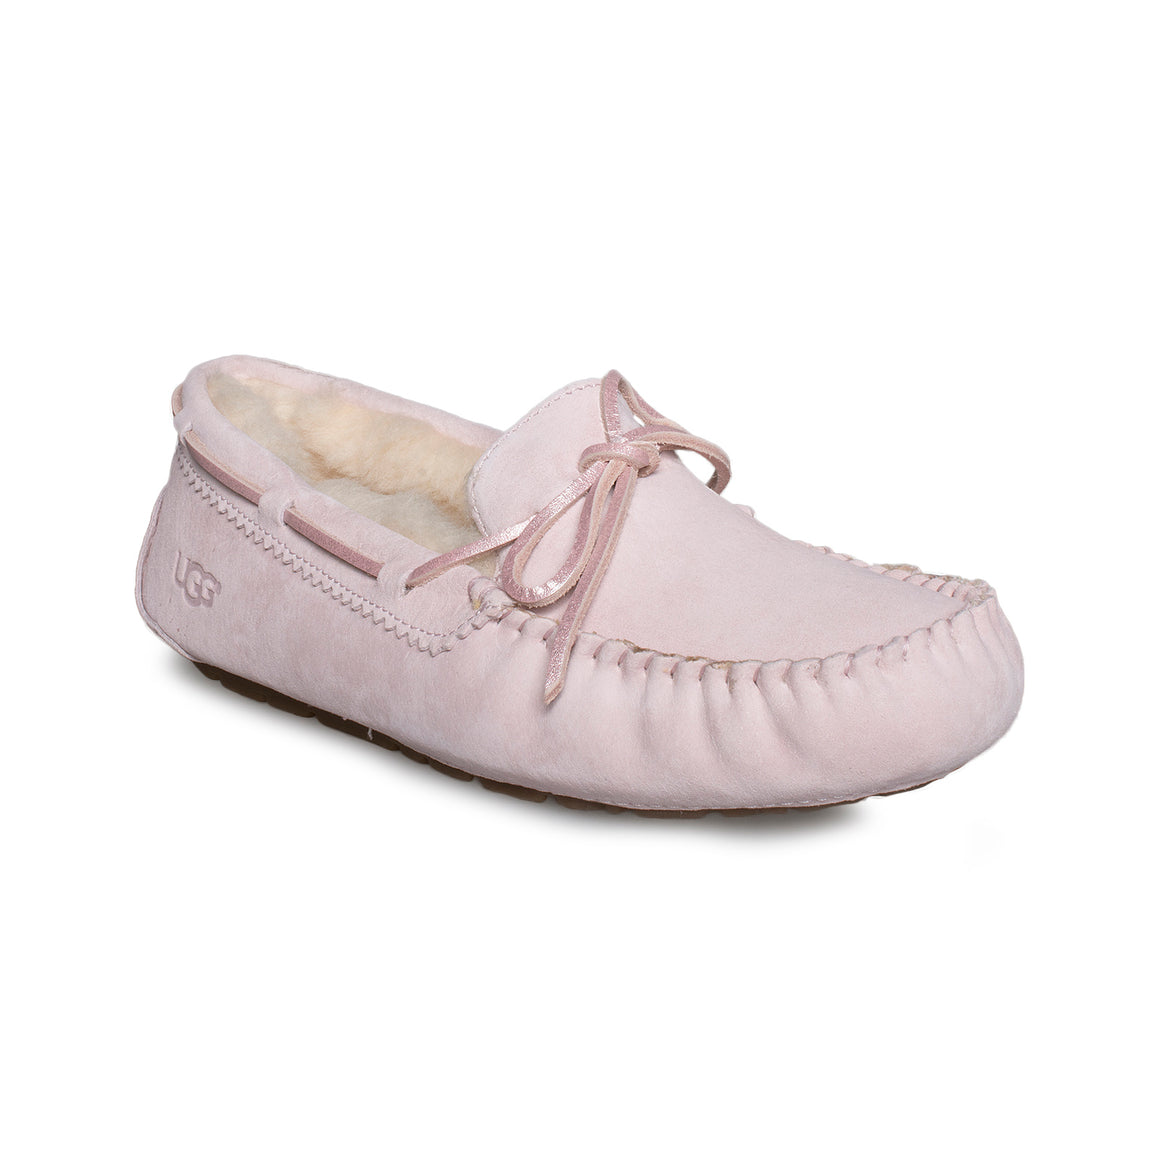 UGG Dakota Metallic Seashell Pink Slippers - Women's